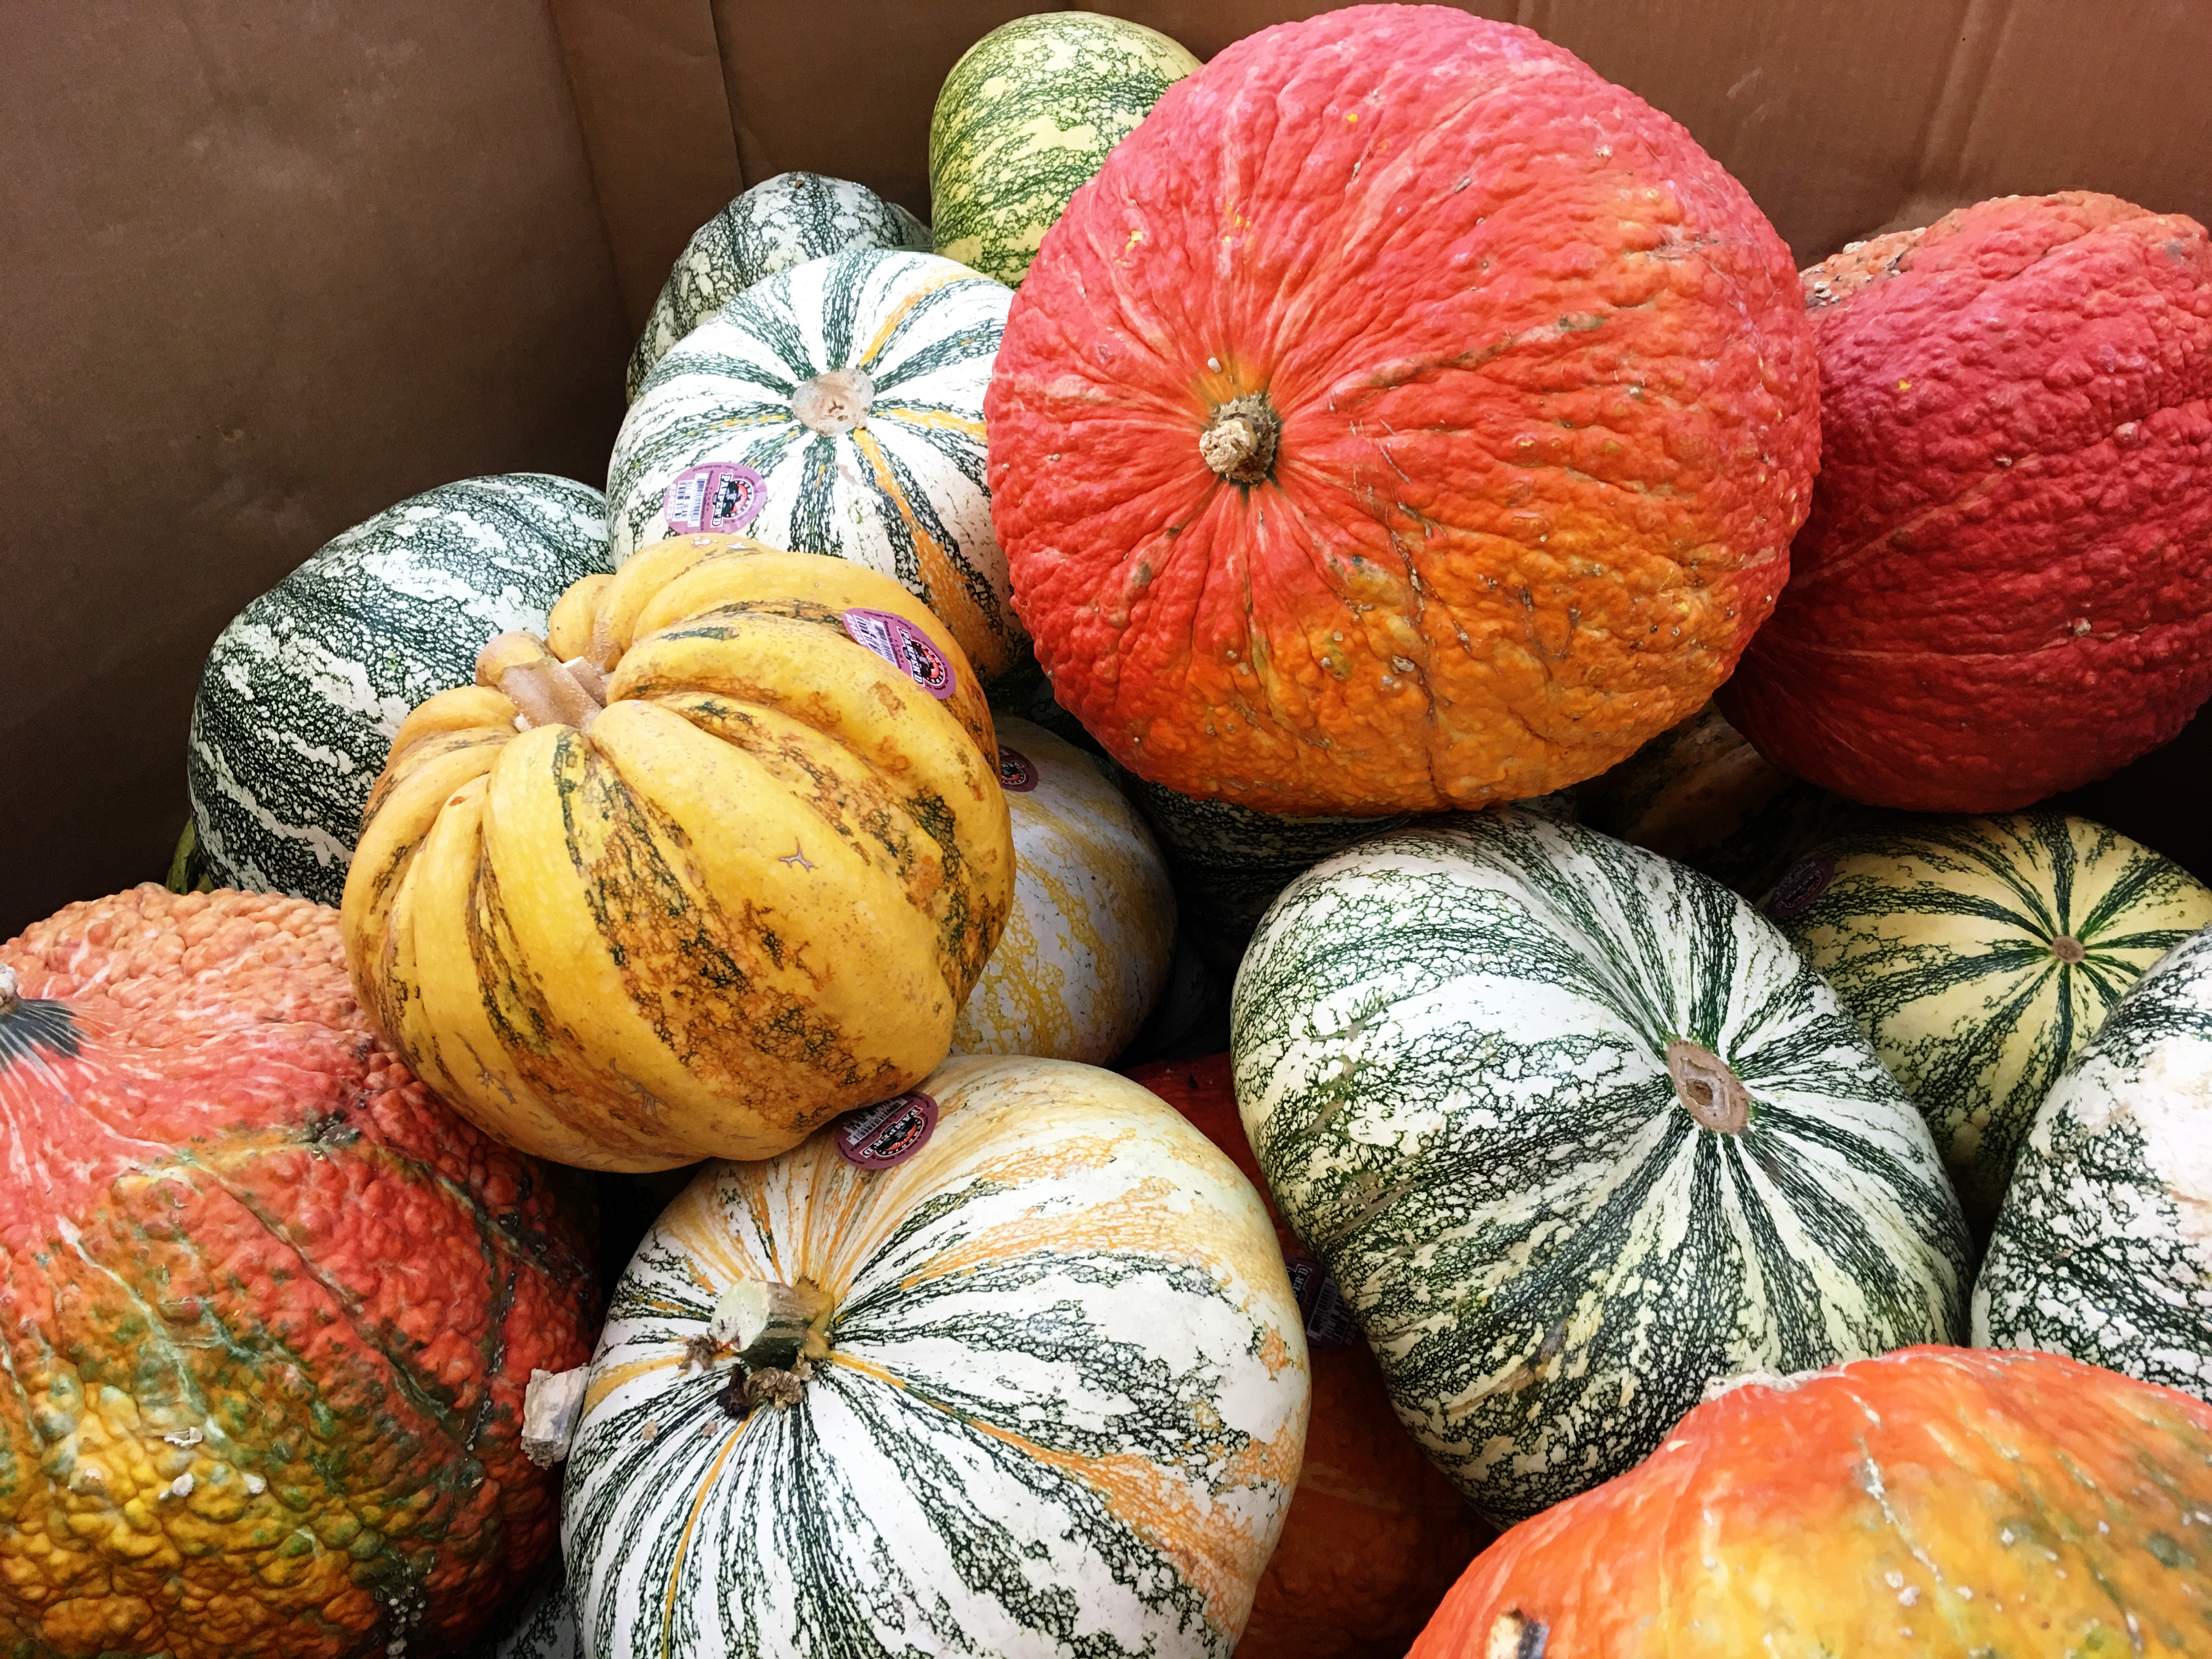 Pumpkin selection is a personal choice. Check out pumpkins of various shapes, sizes, colors and textures along your journey to a perfect pumpkin. (Photo: Photo by Ashley Andrews.)